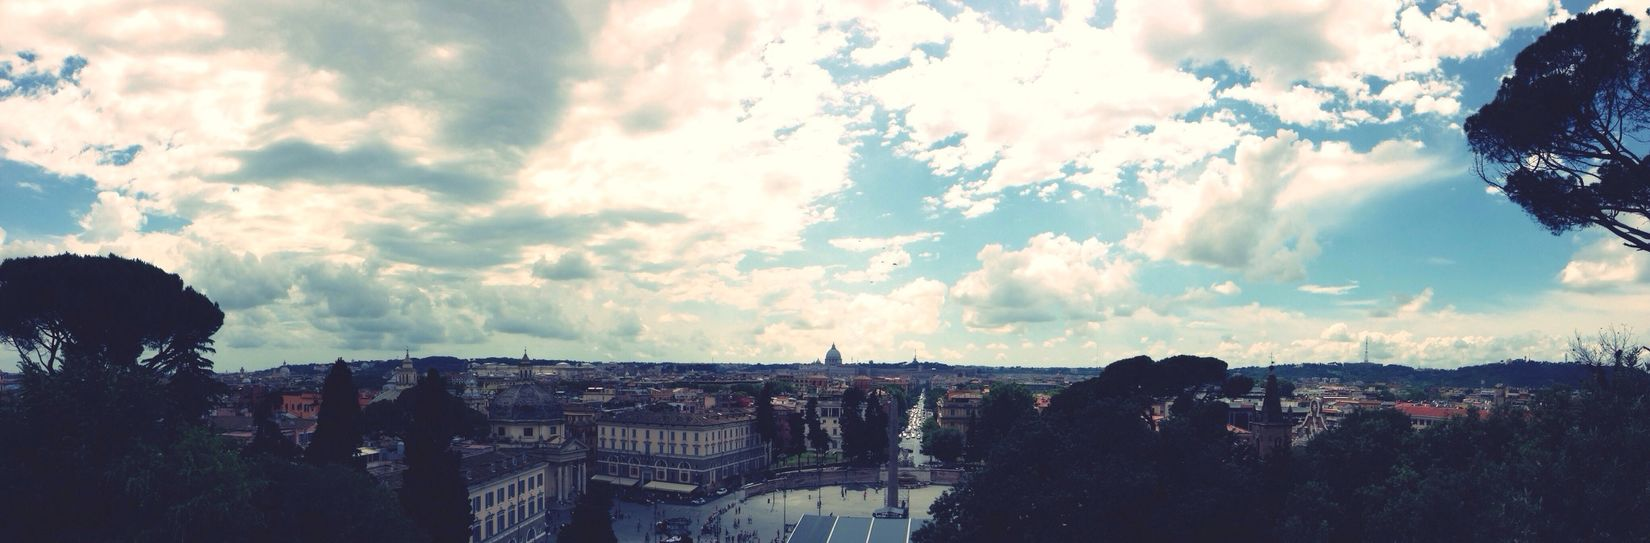 Terrazza del Pincio Roma Urban Landscape First Eyeem Photo